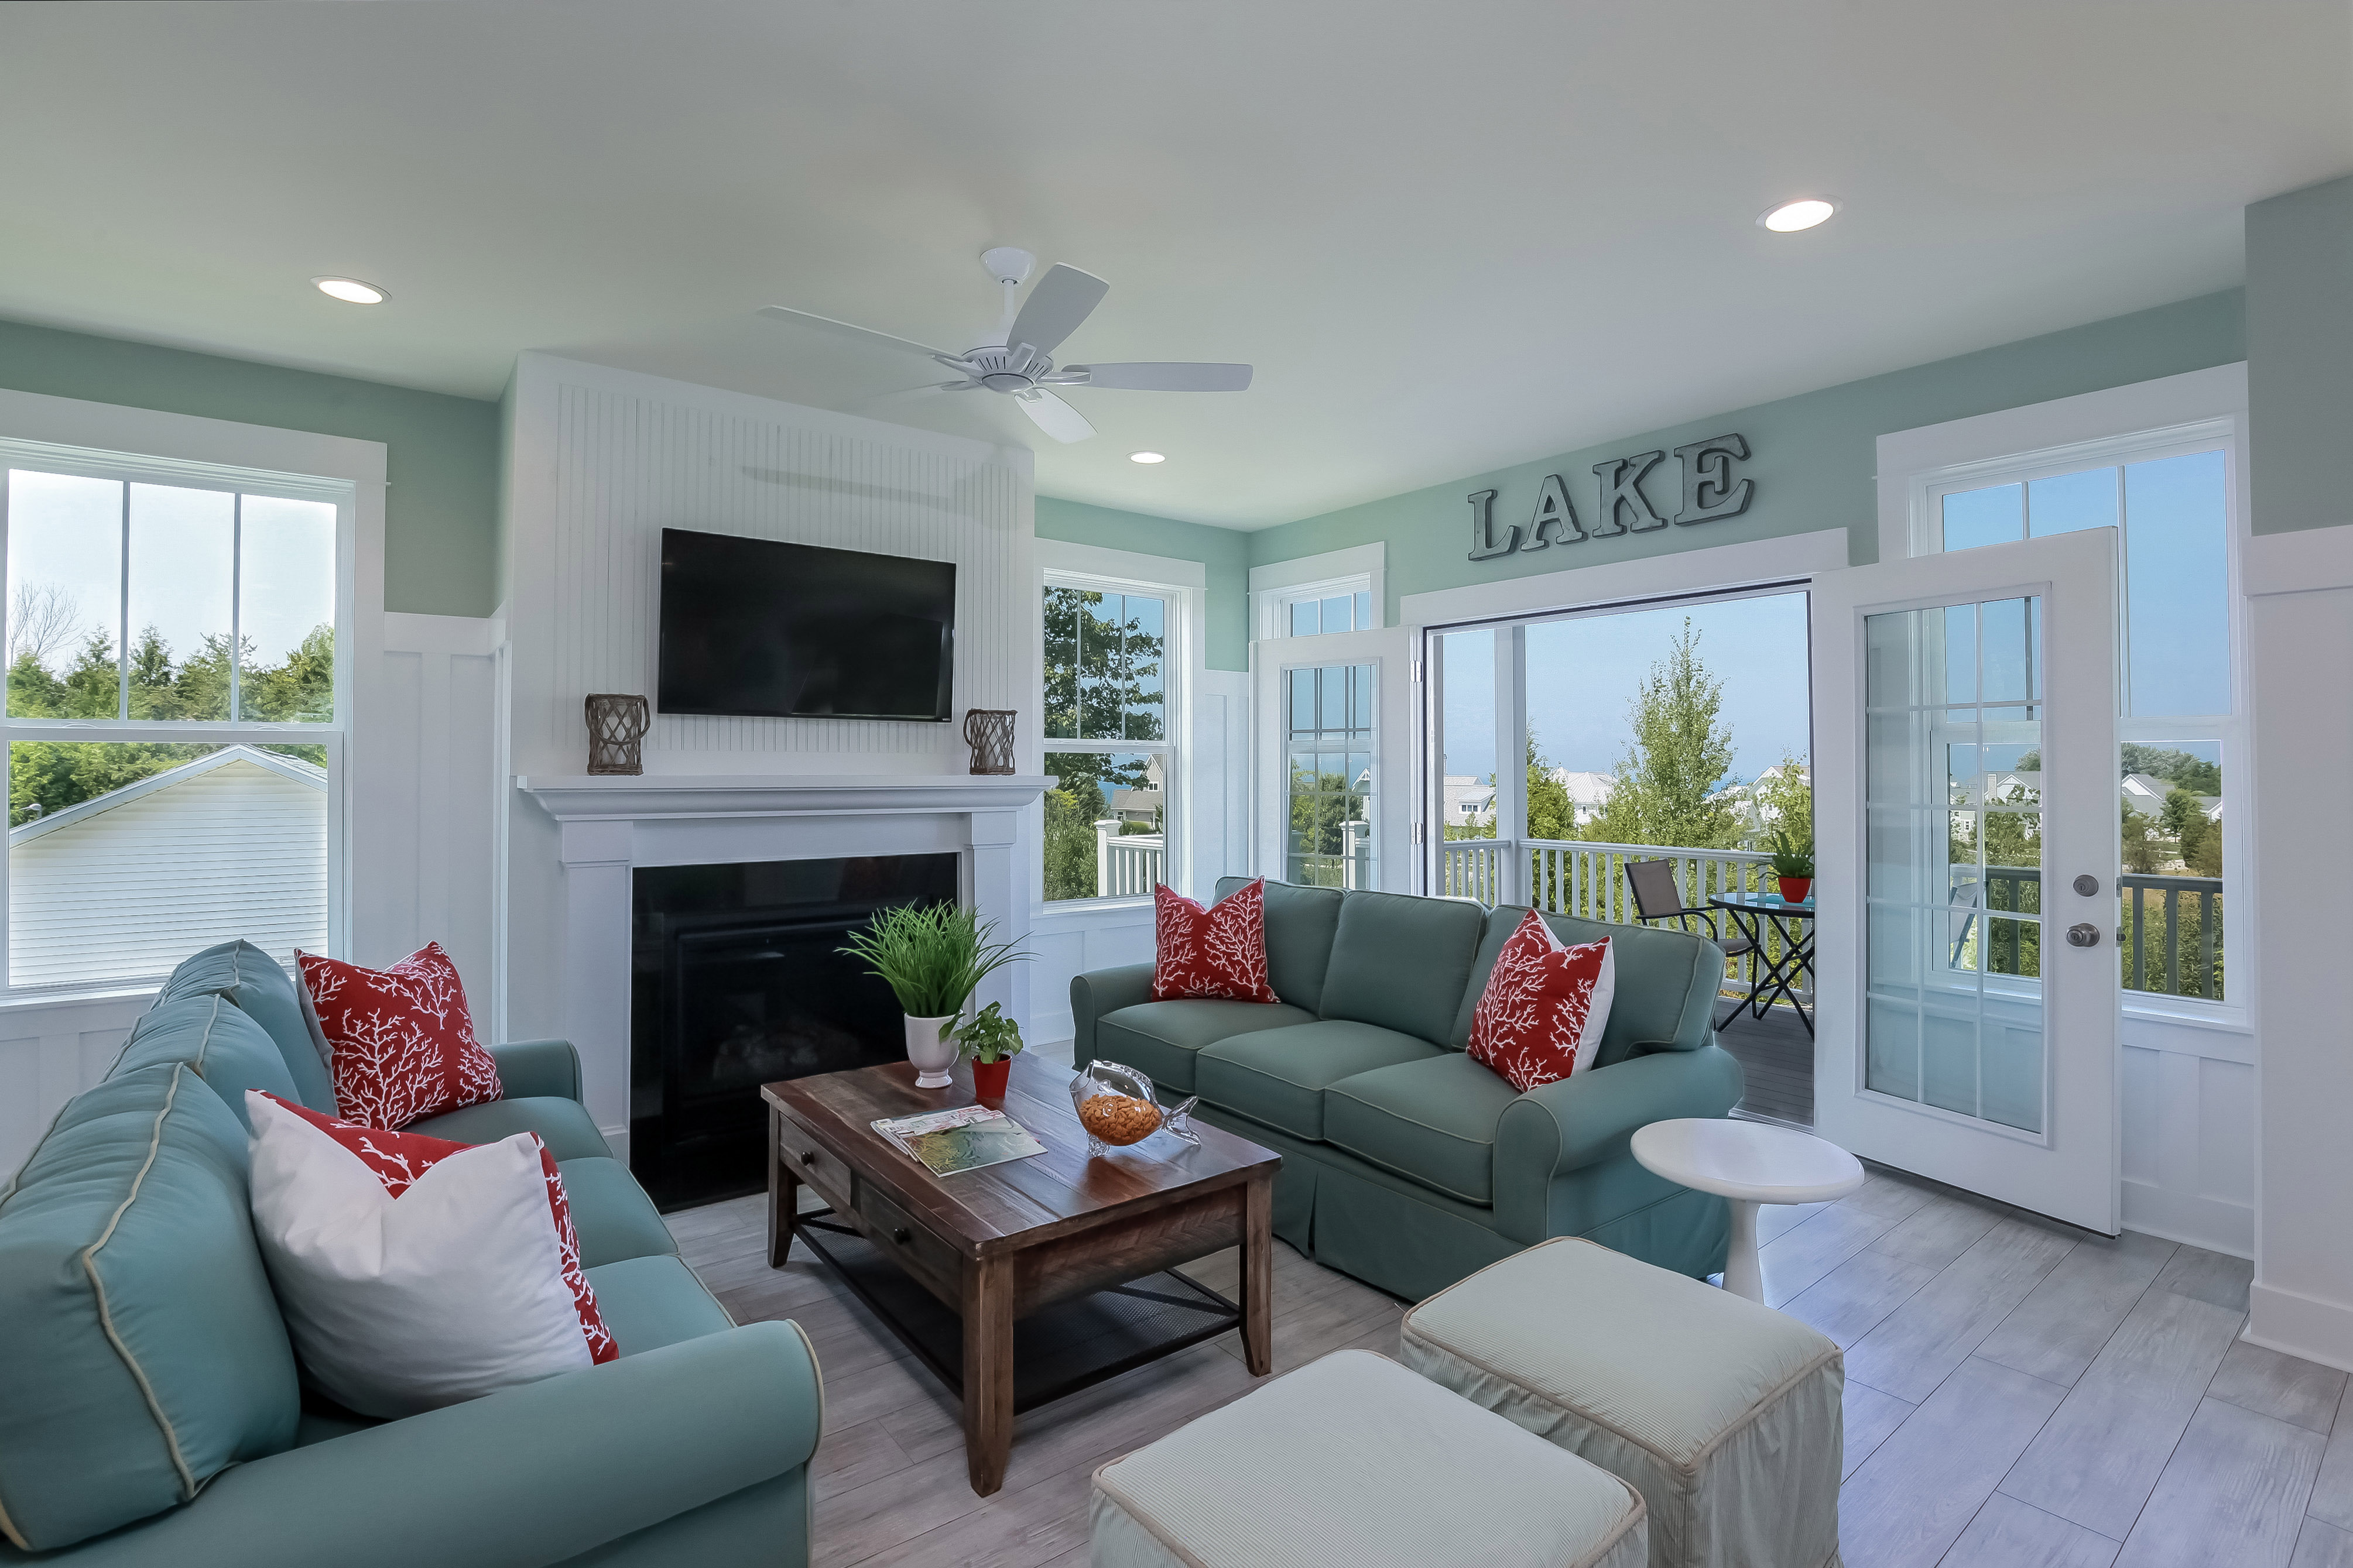 Ritz craft custom homes honored by national awards program - Images of living room decor ...